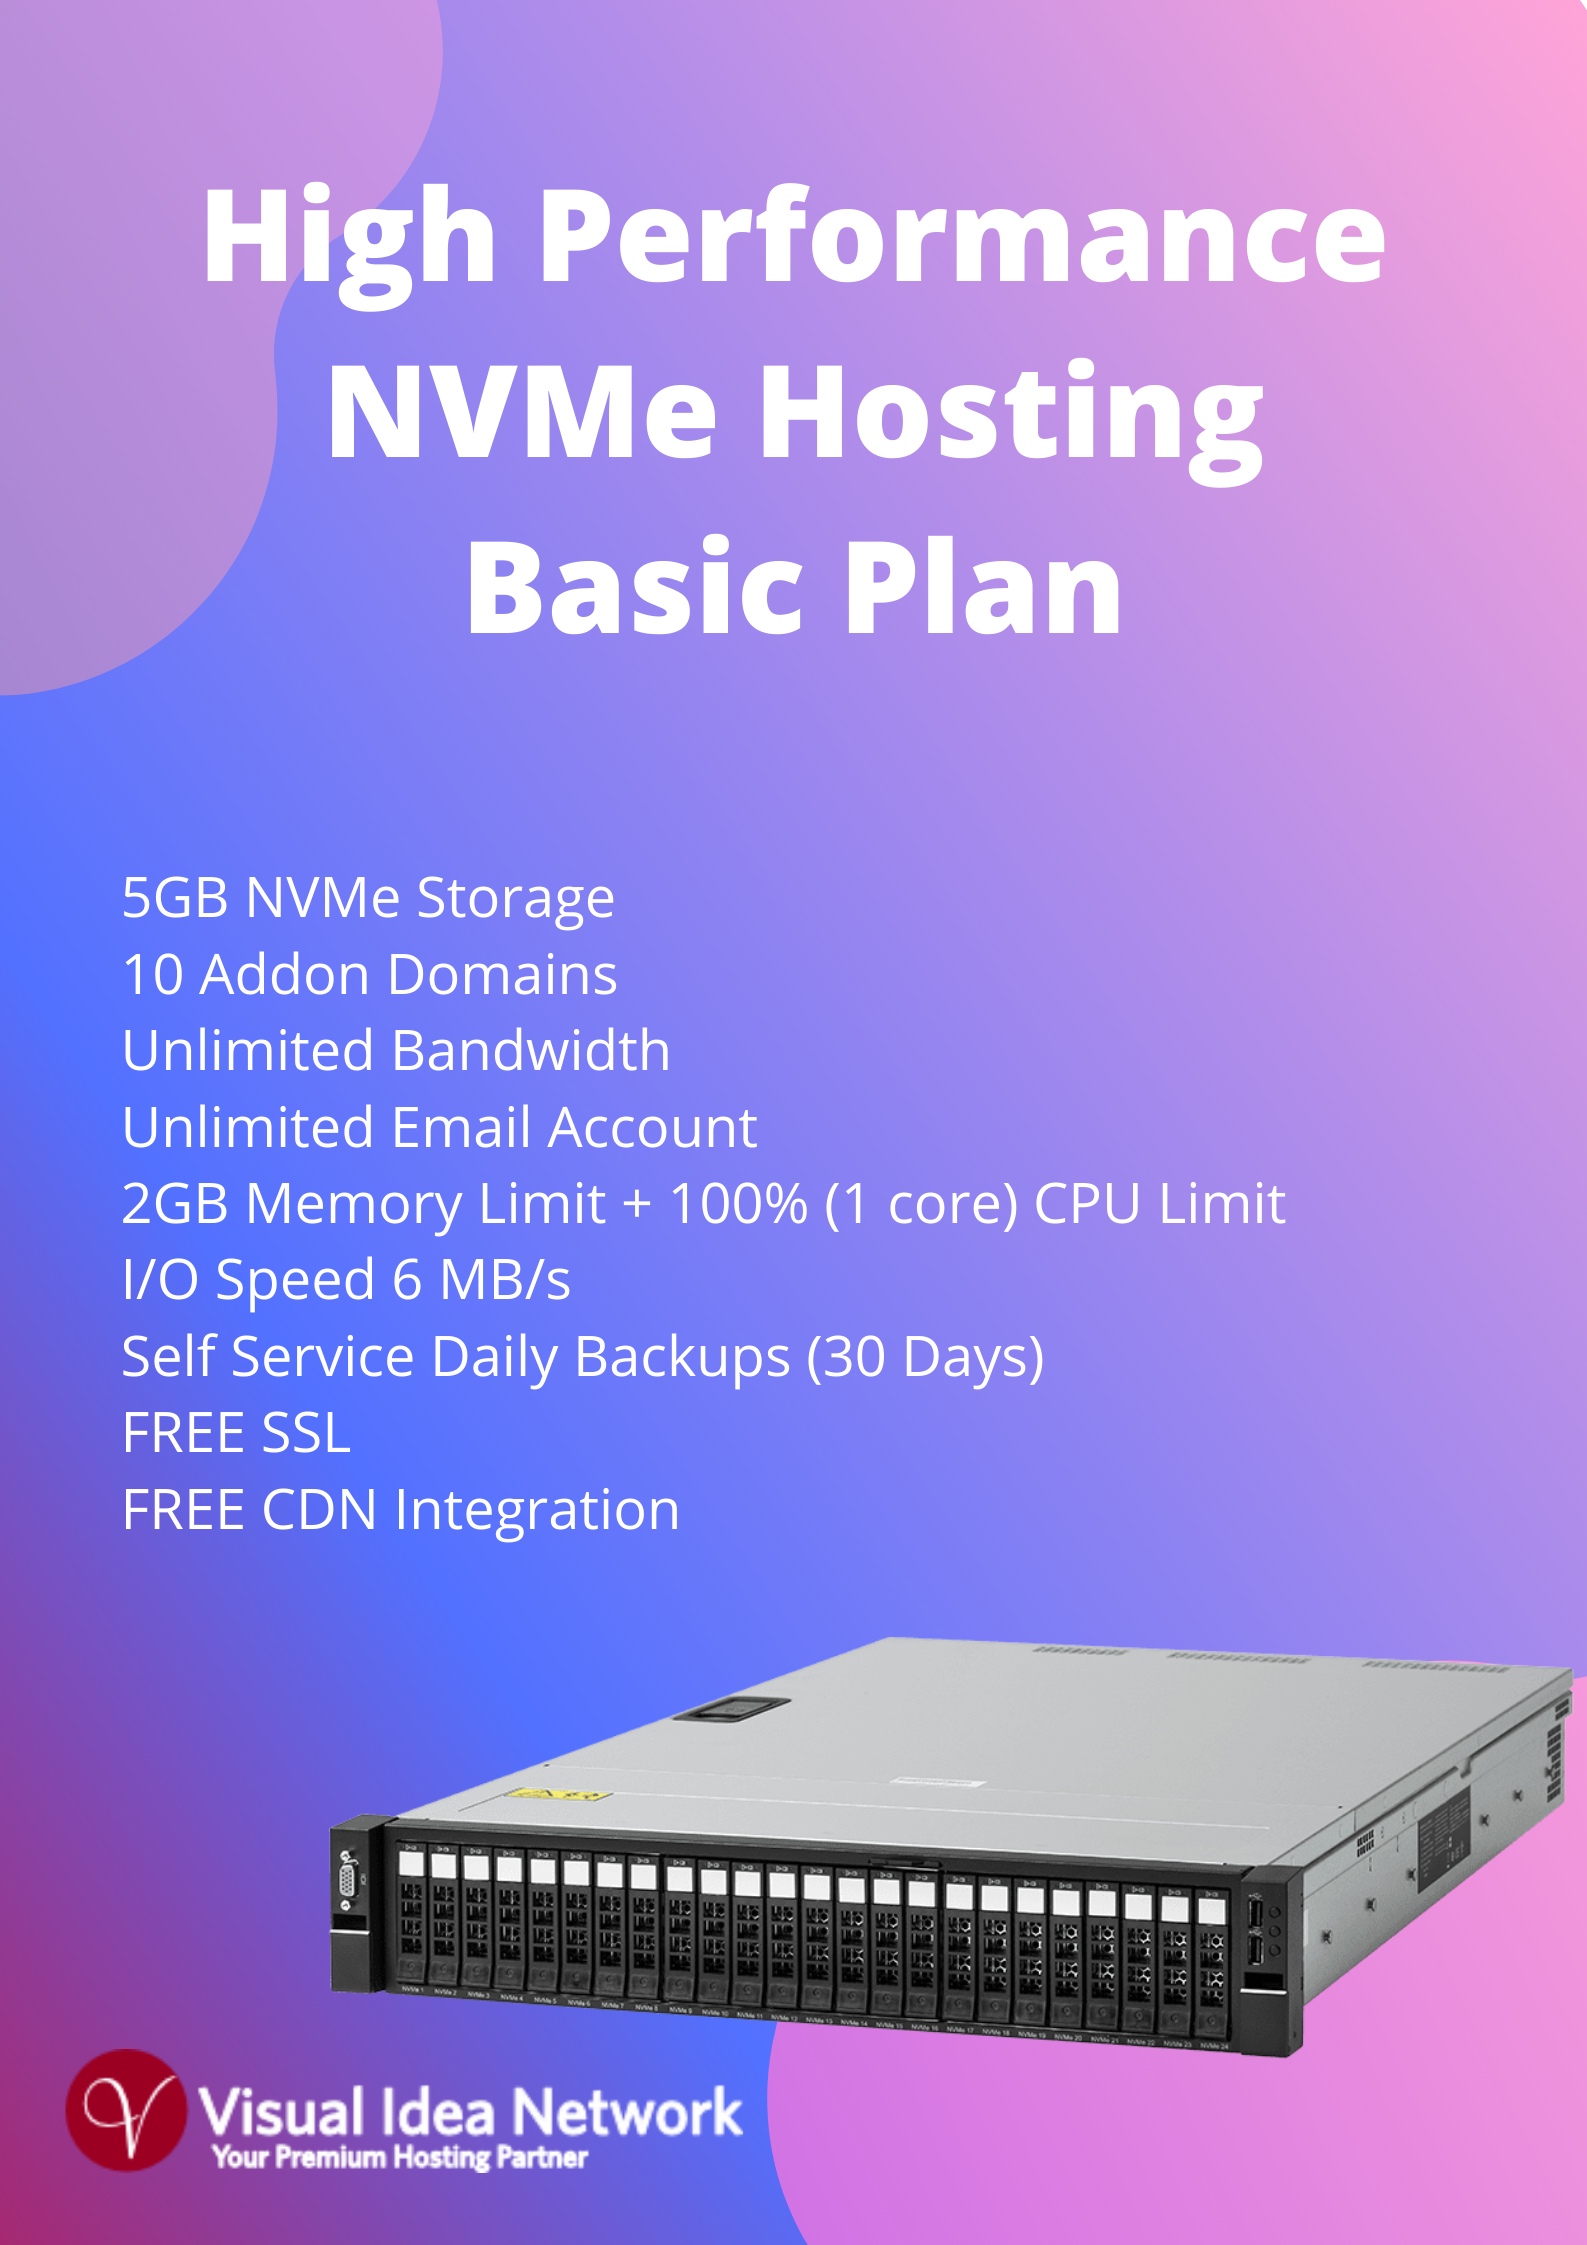 Austraria NVMe Hosting Basic Plan